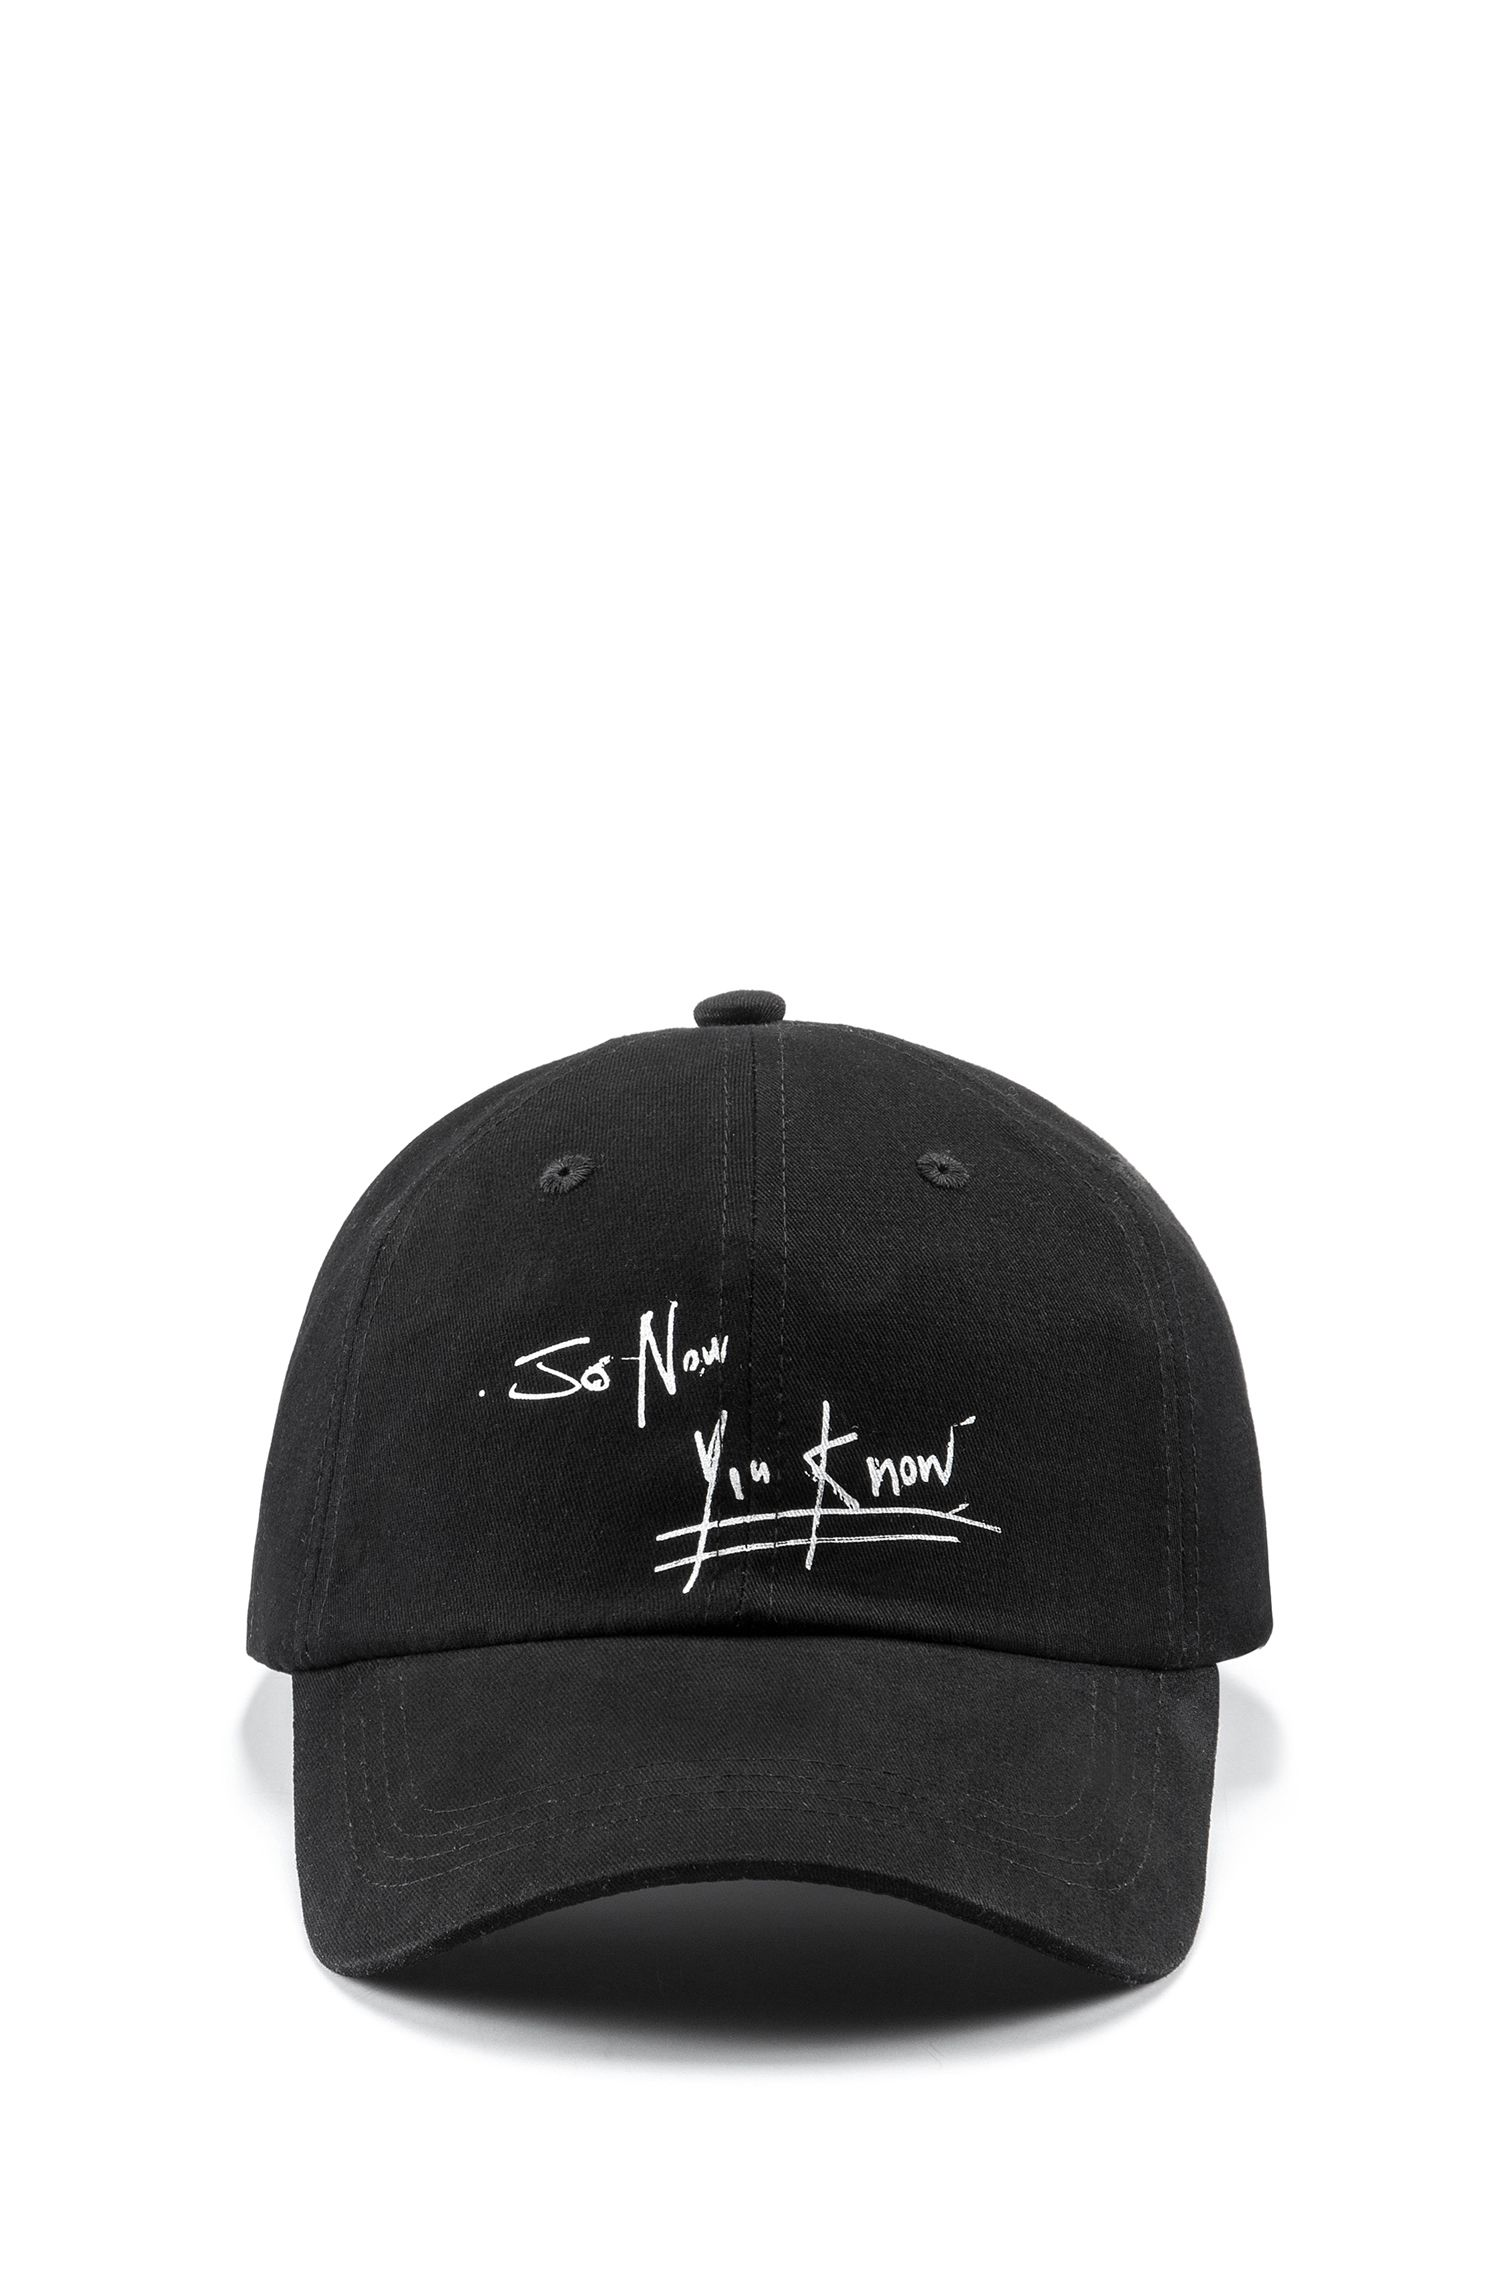 Cotton-twill baseball cap with street-art slogan